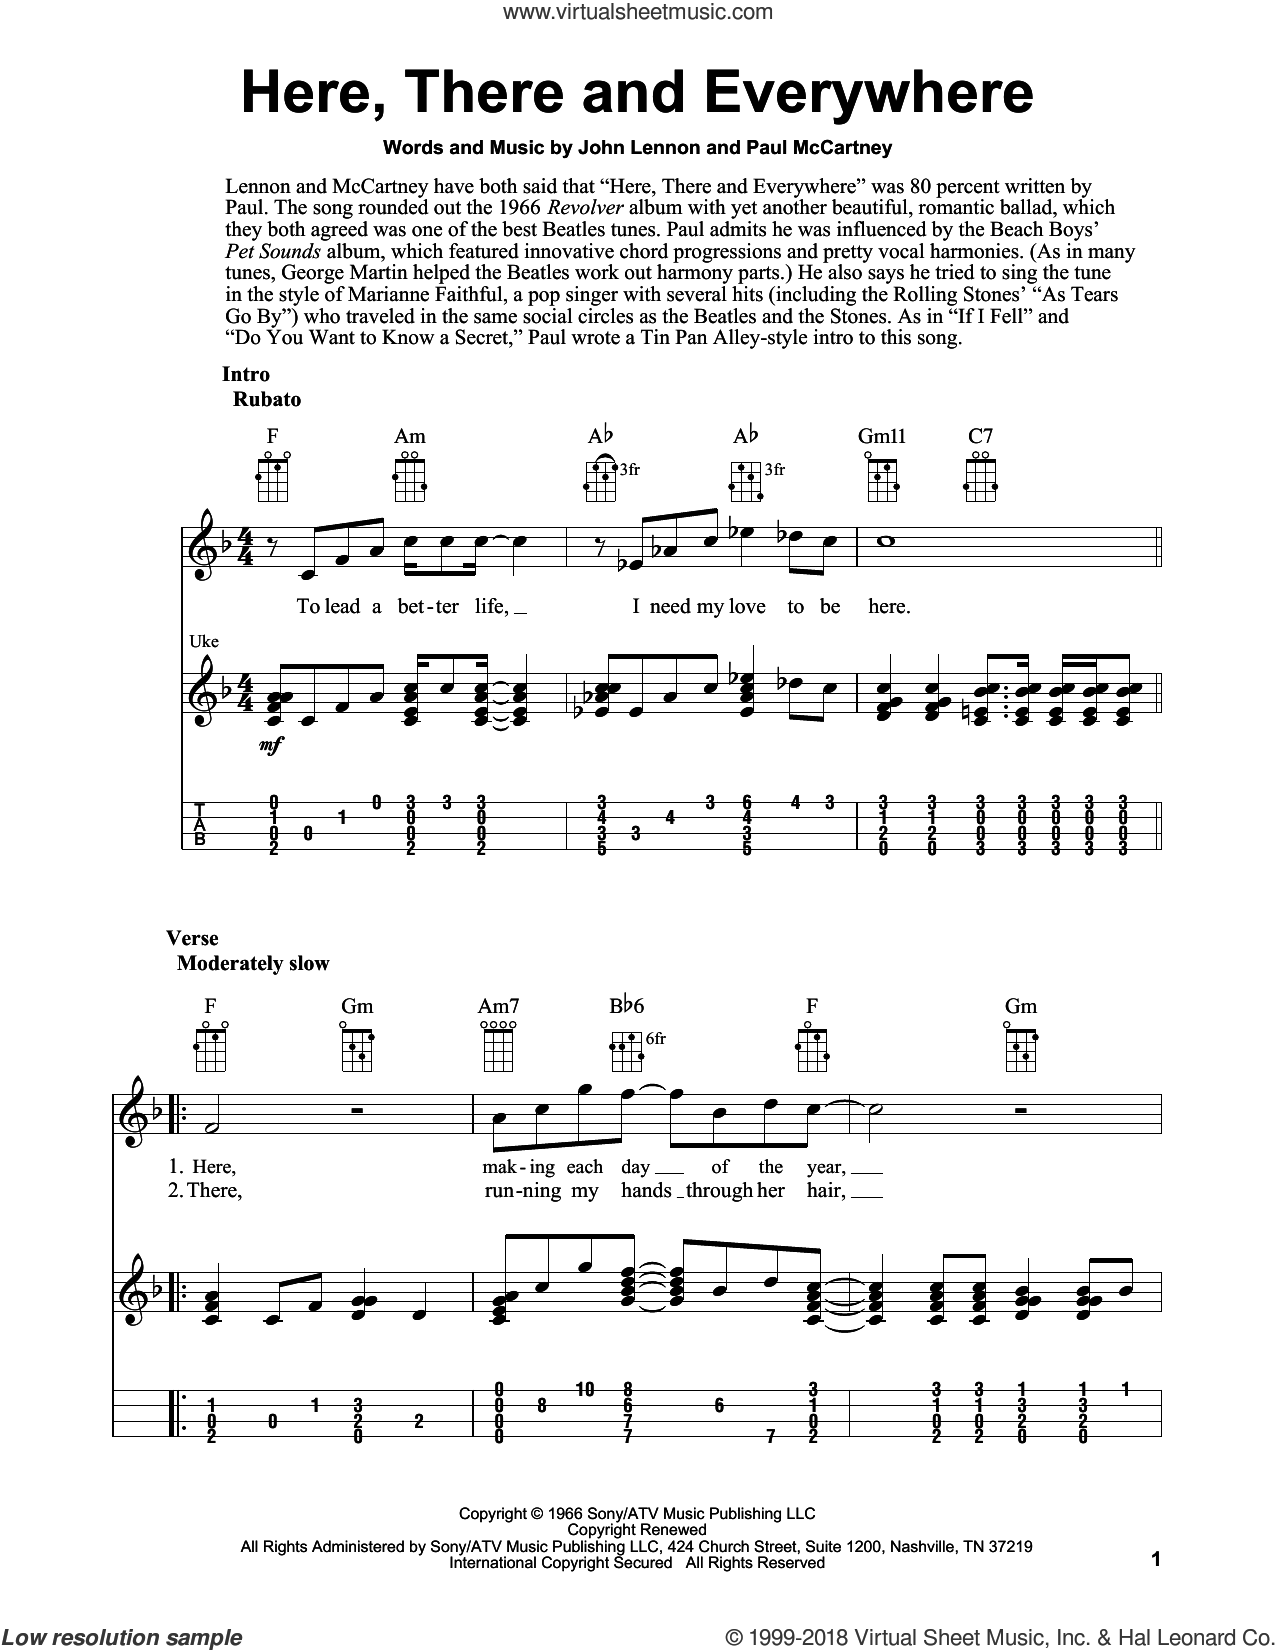 Here, There And Everywhere sheet music for ukulele by The Beatles, Fred Sokolow, George Benson, John Lennon and Paul McCartney, intermediate skill level